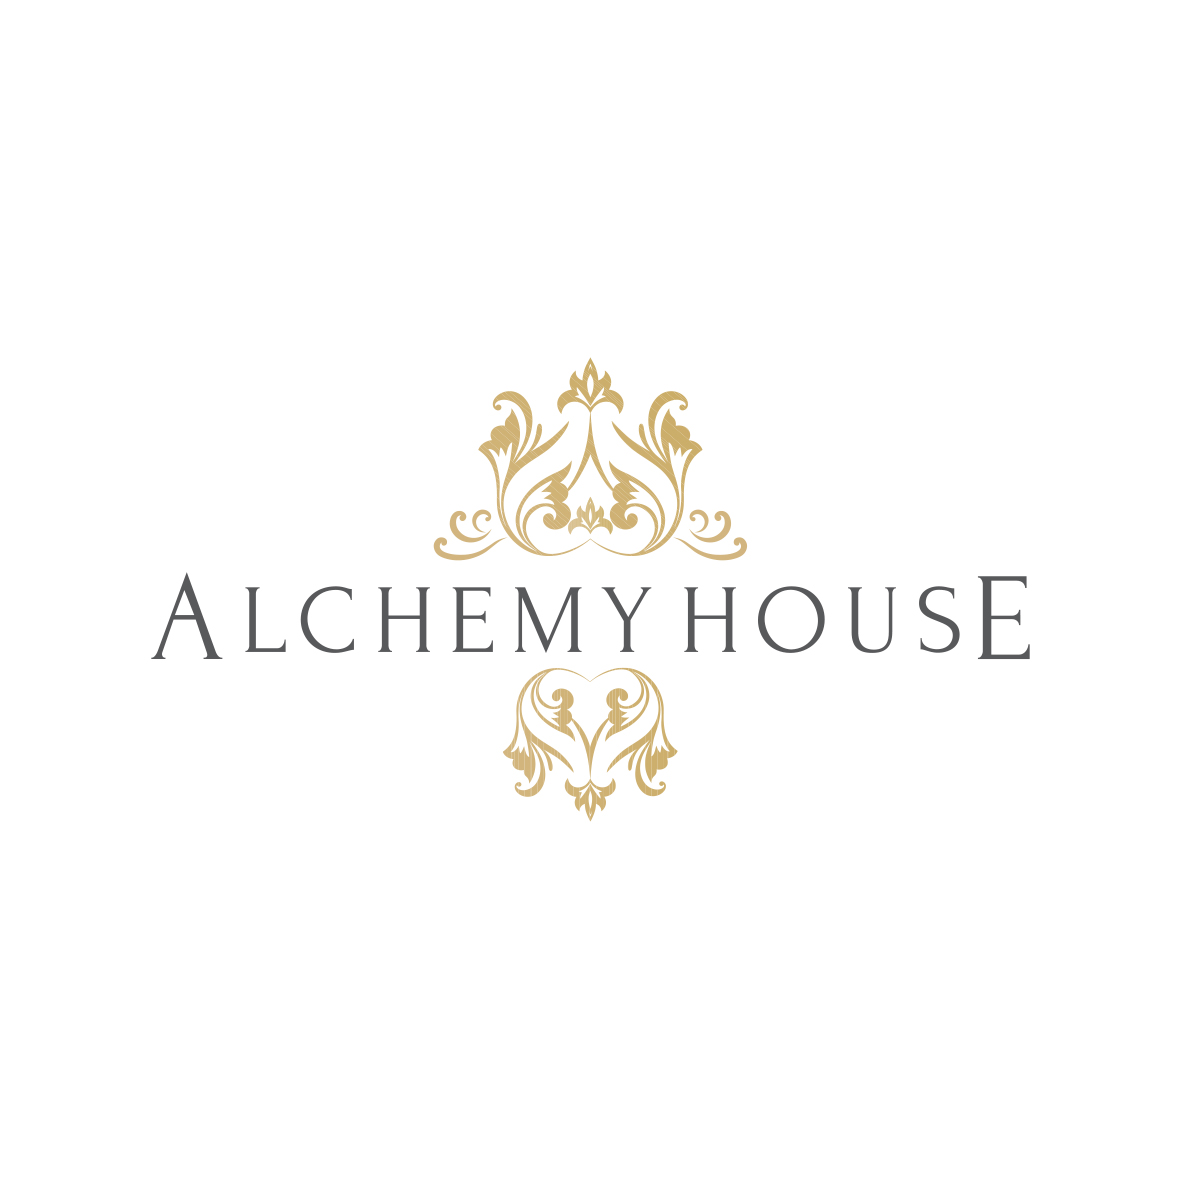 Boutique logo design and elegant gold business branding by graphic designer Lara Hardy from Billie Hardy Creative